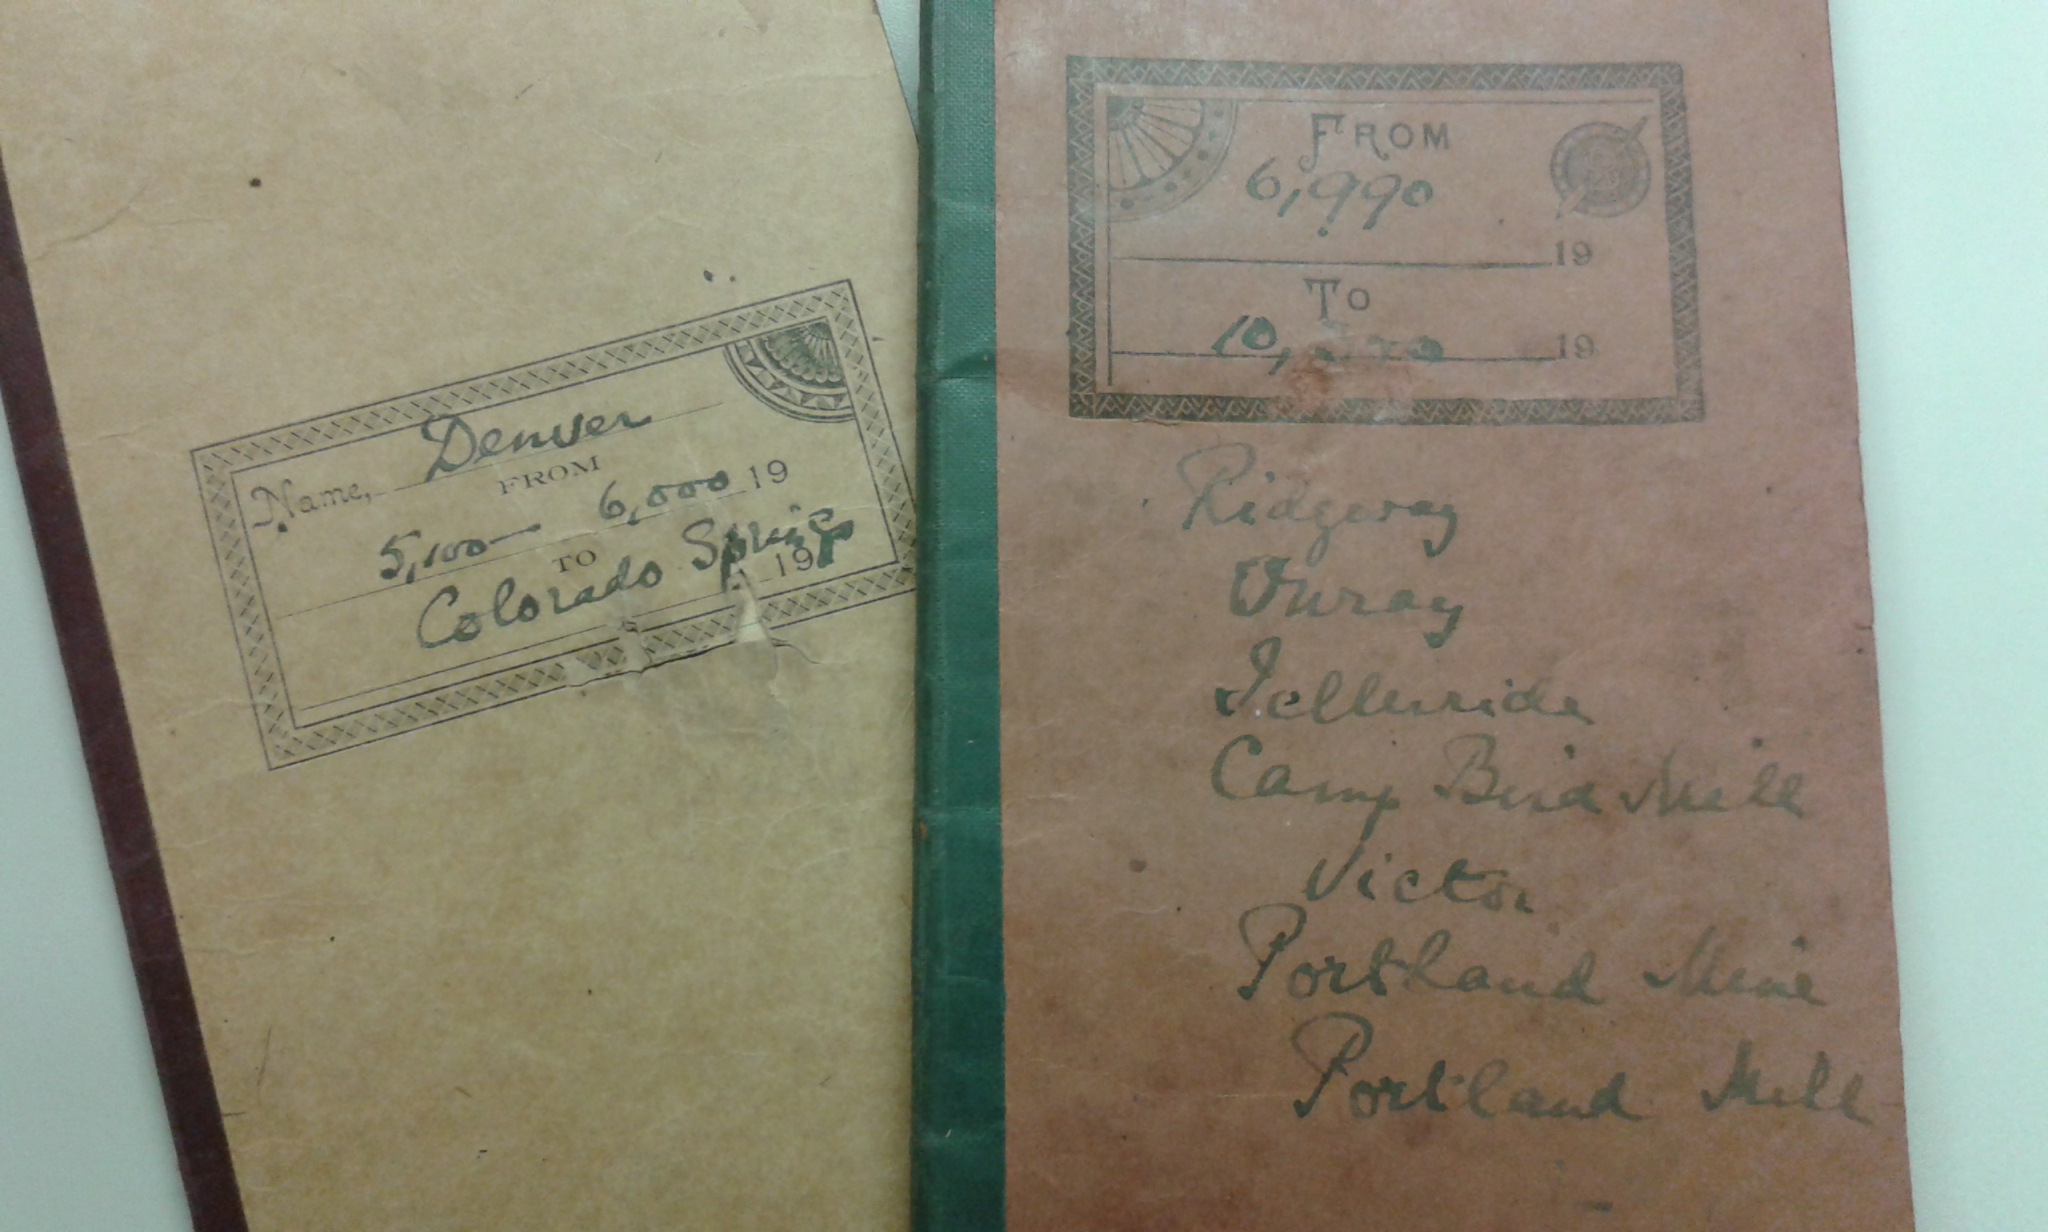 Mabel FitzGerald's field notes from the Pikes Peak expedition, 1911.